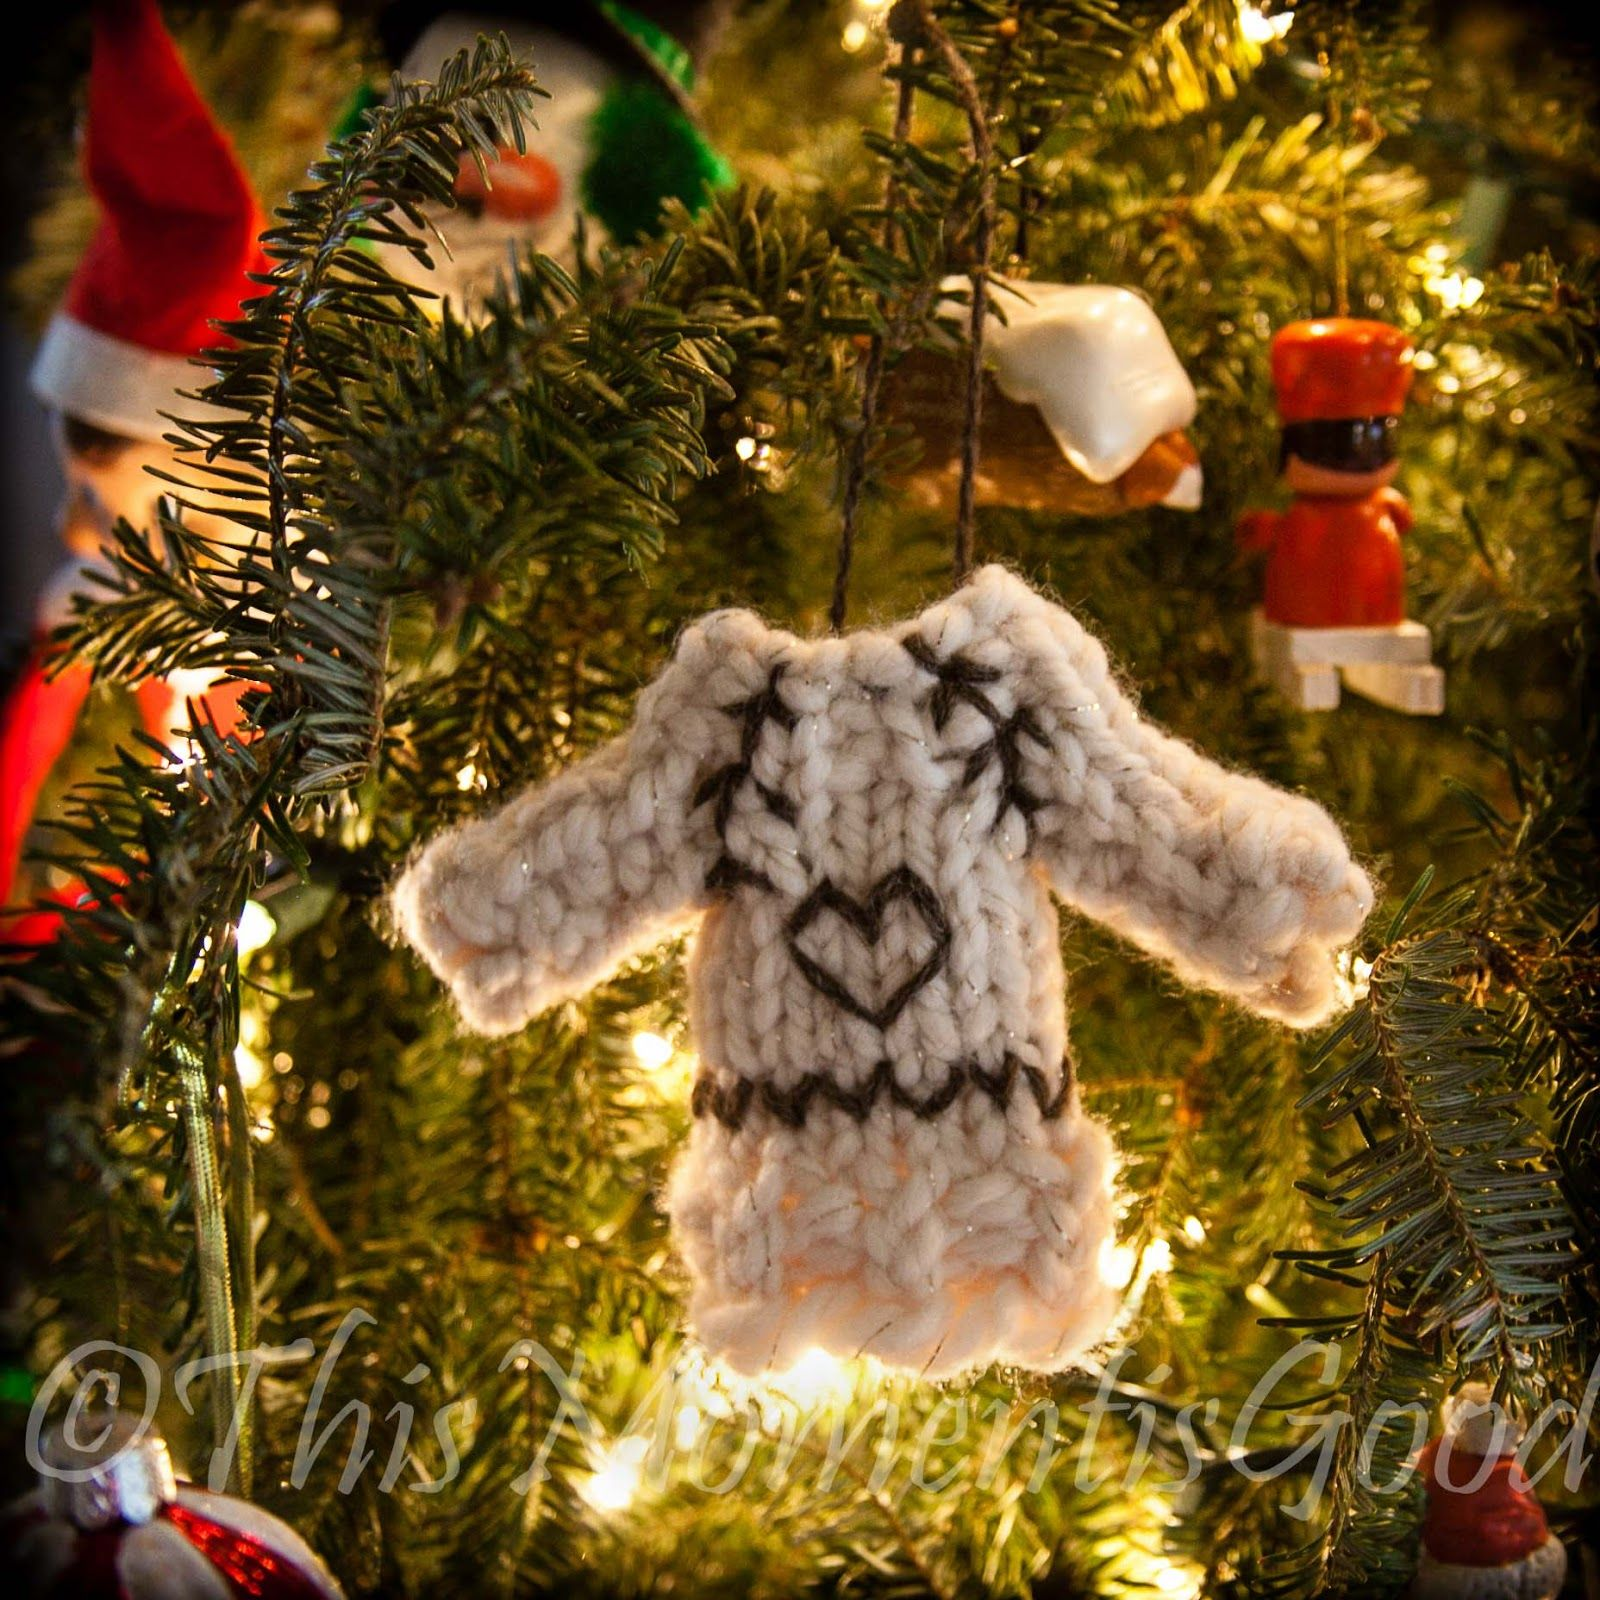 Delightful Loom Knit Christmas Ornaments Part - 8: Loom Knitting By This Moment Is Good!: LOOM KNIT SWEATER ORNAMENT PATTERN!